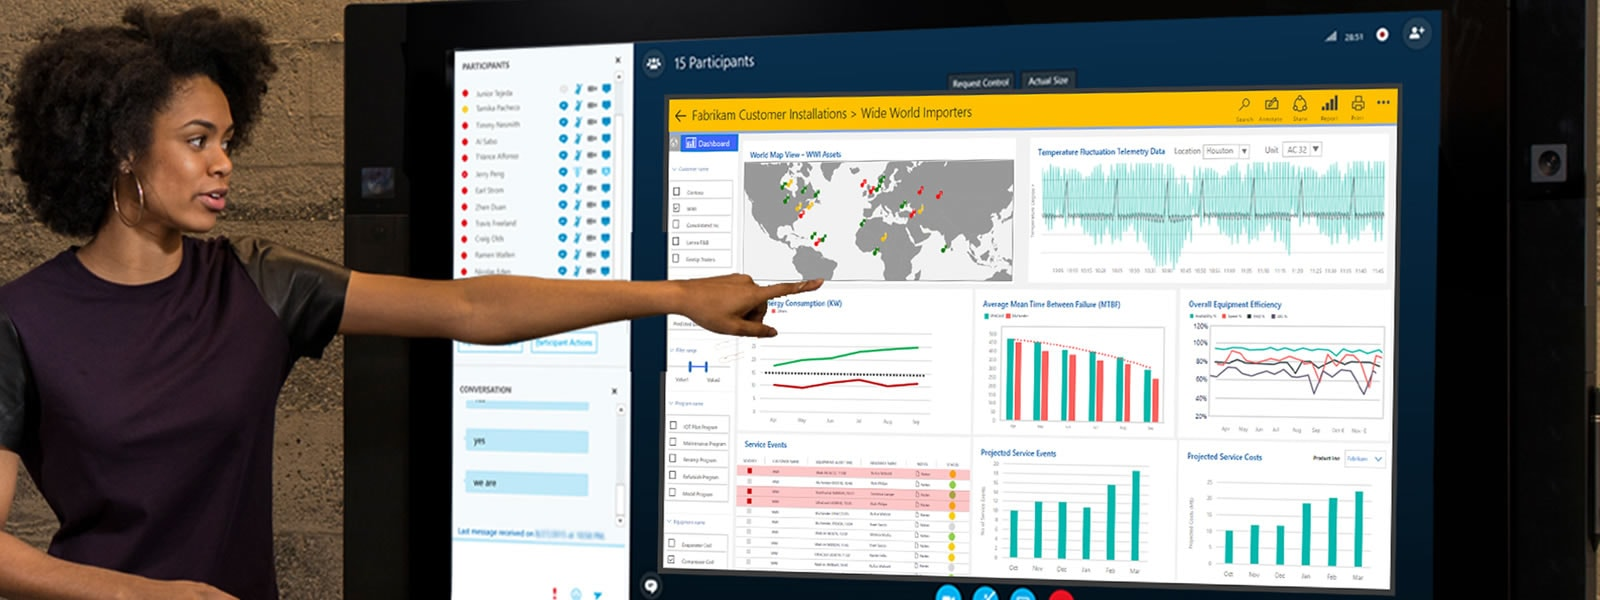 female pointing to data charts on large monitor during Skype meeting